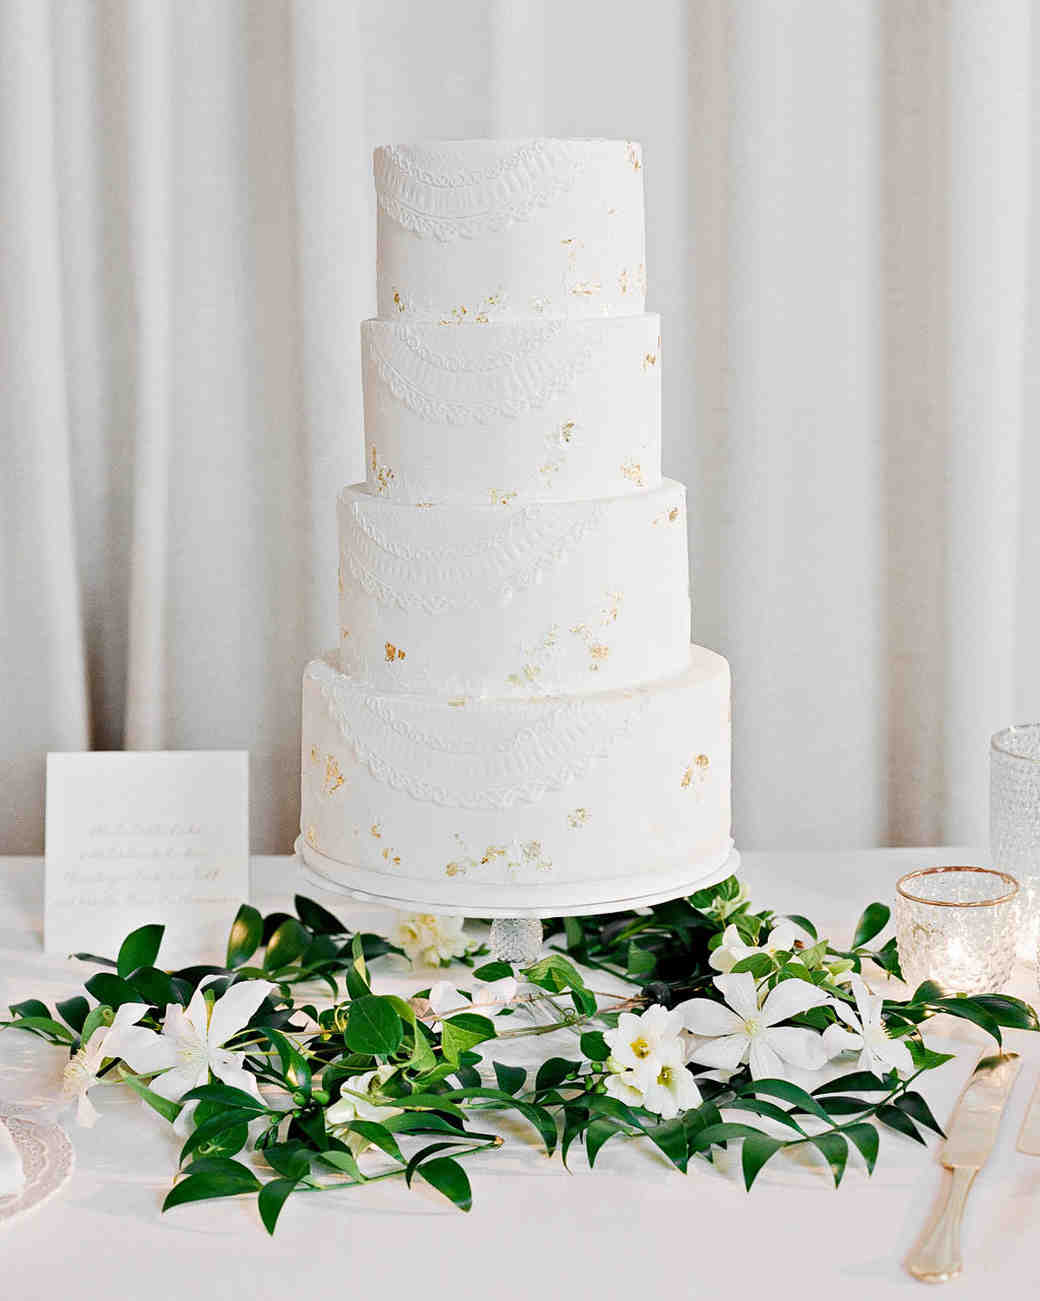 Gold Leaf Wedding Cake with Greenery and White Flowers